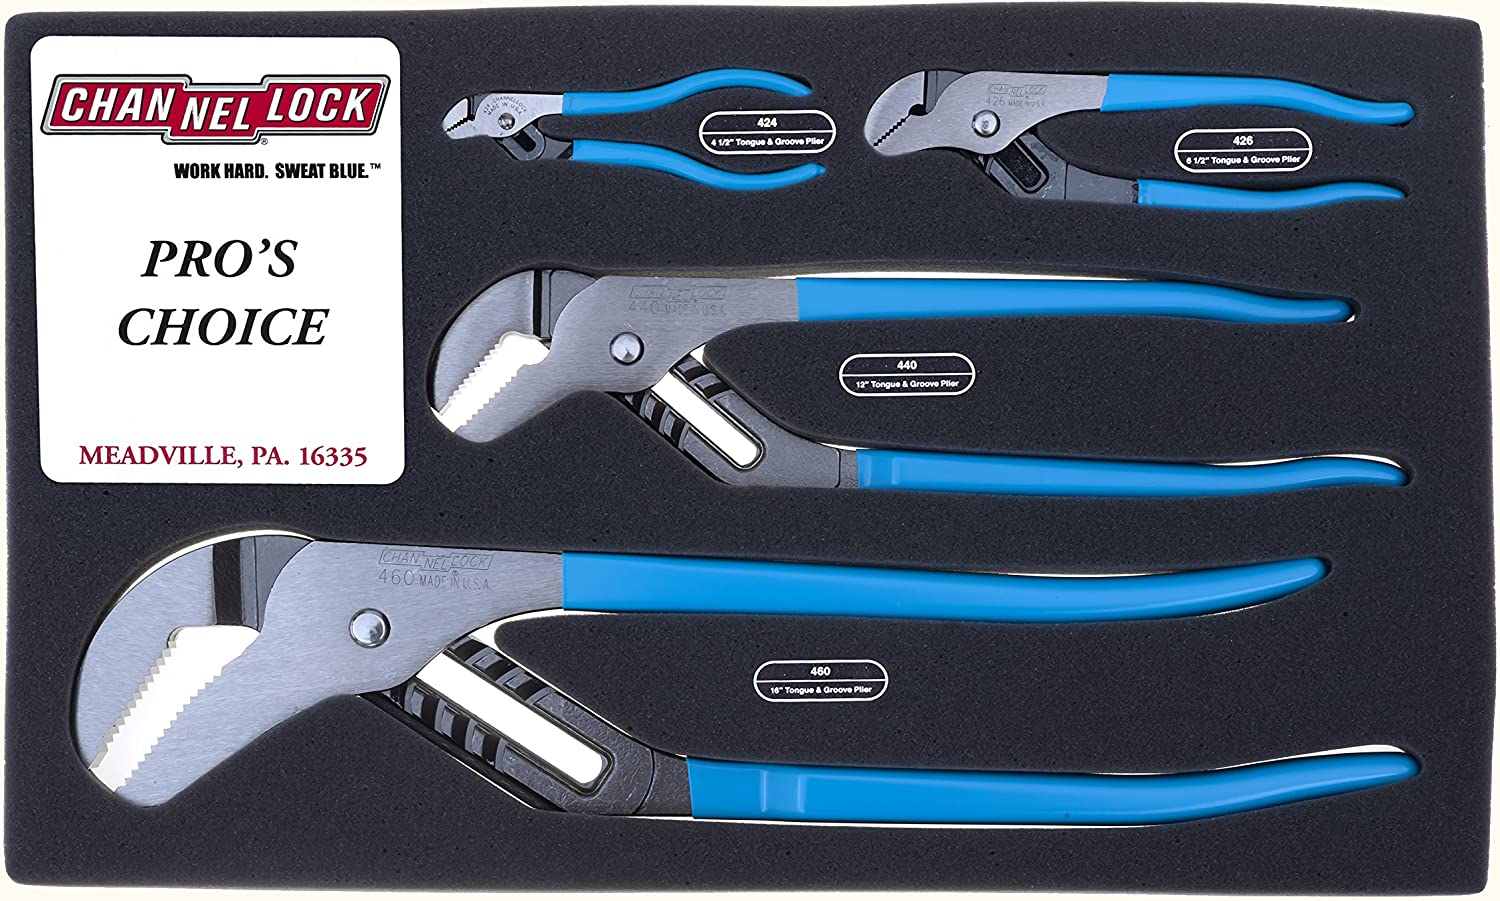 Channellock PC-1 Pit Crew/'s Tongue and Groove Plier Set: 424 440 426 460